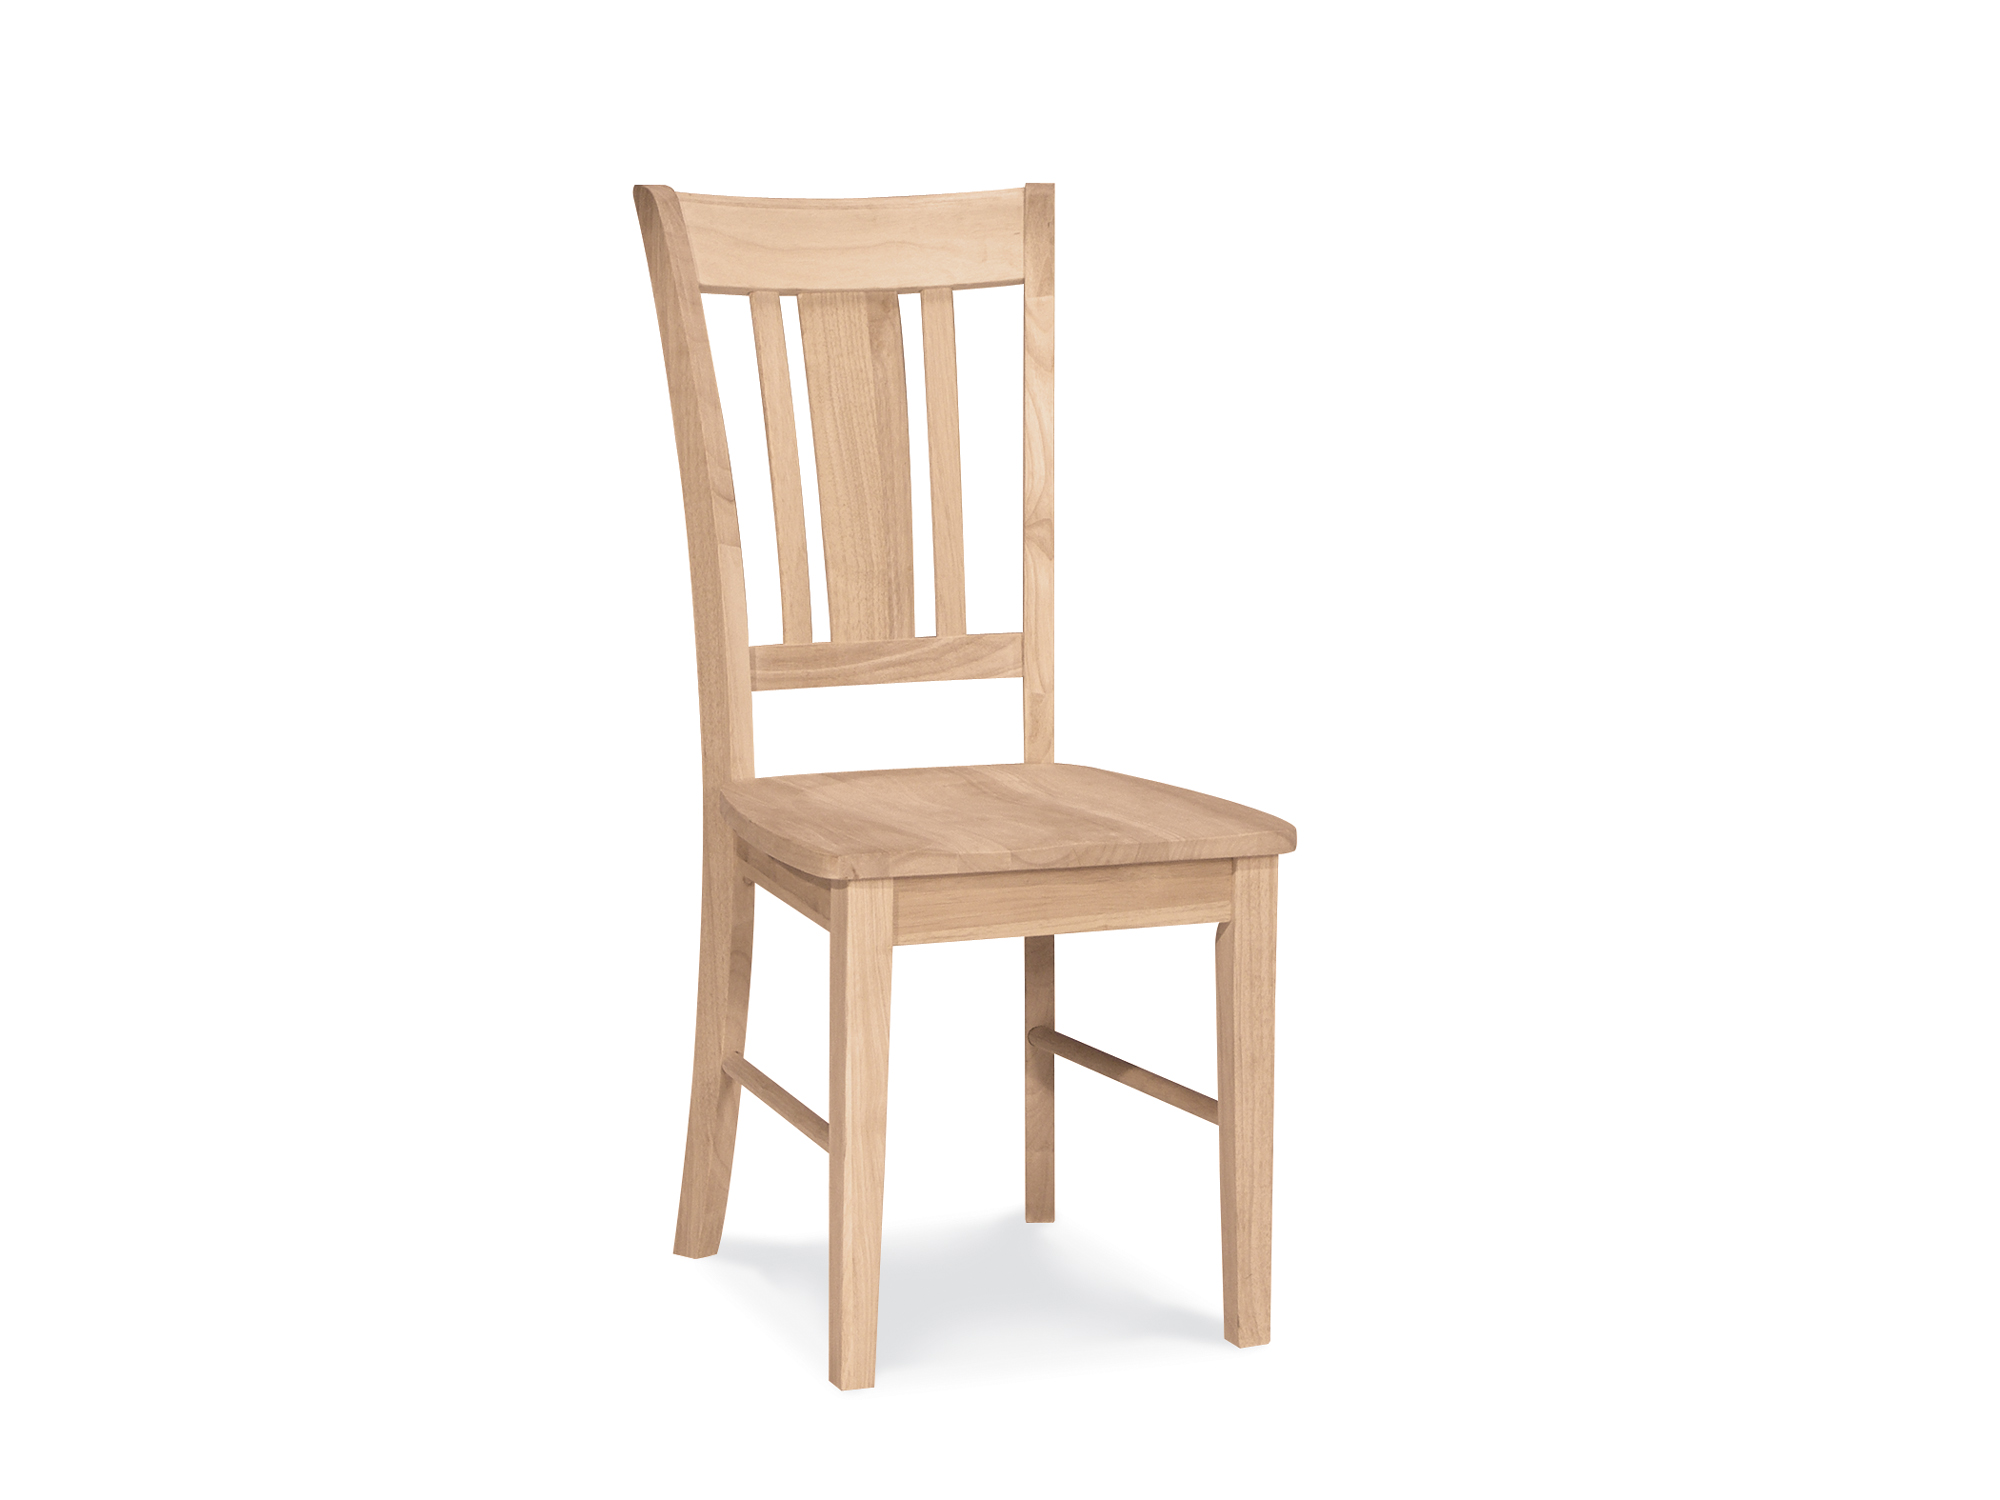 Image of: Simple Unfinished Wood Dining Chairs